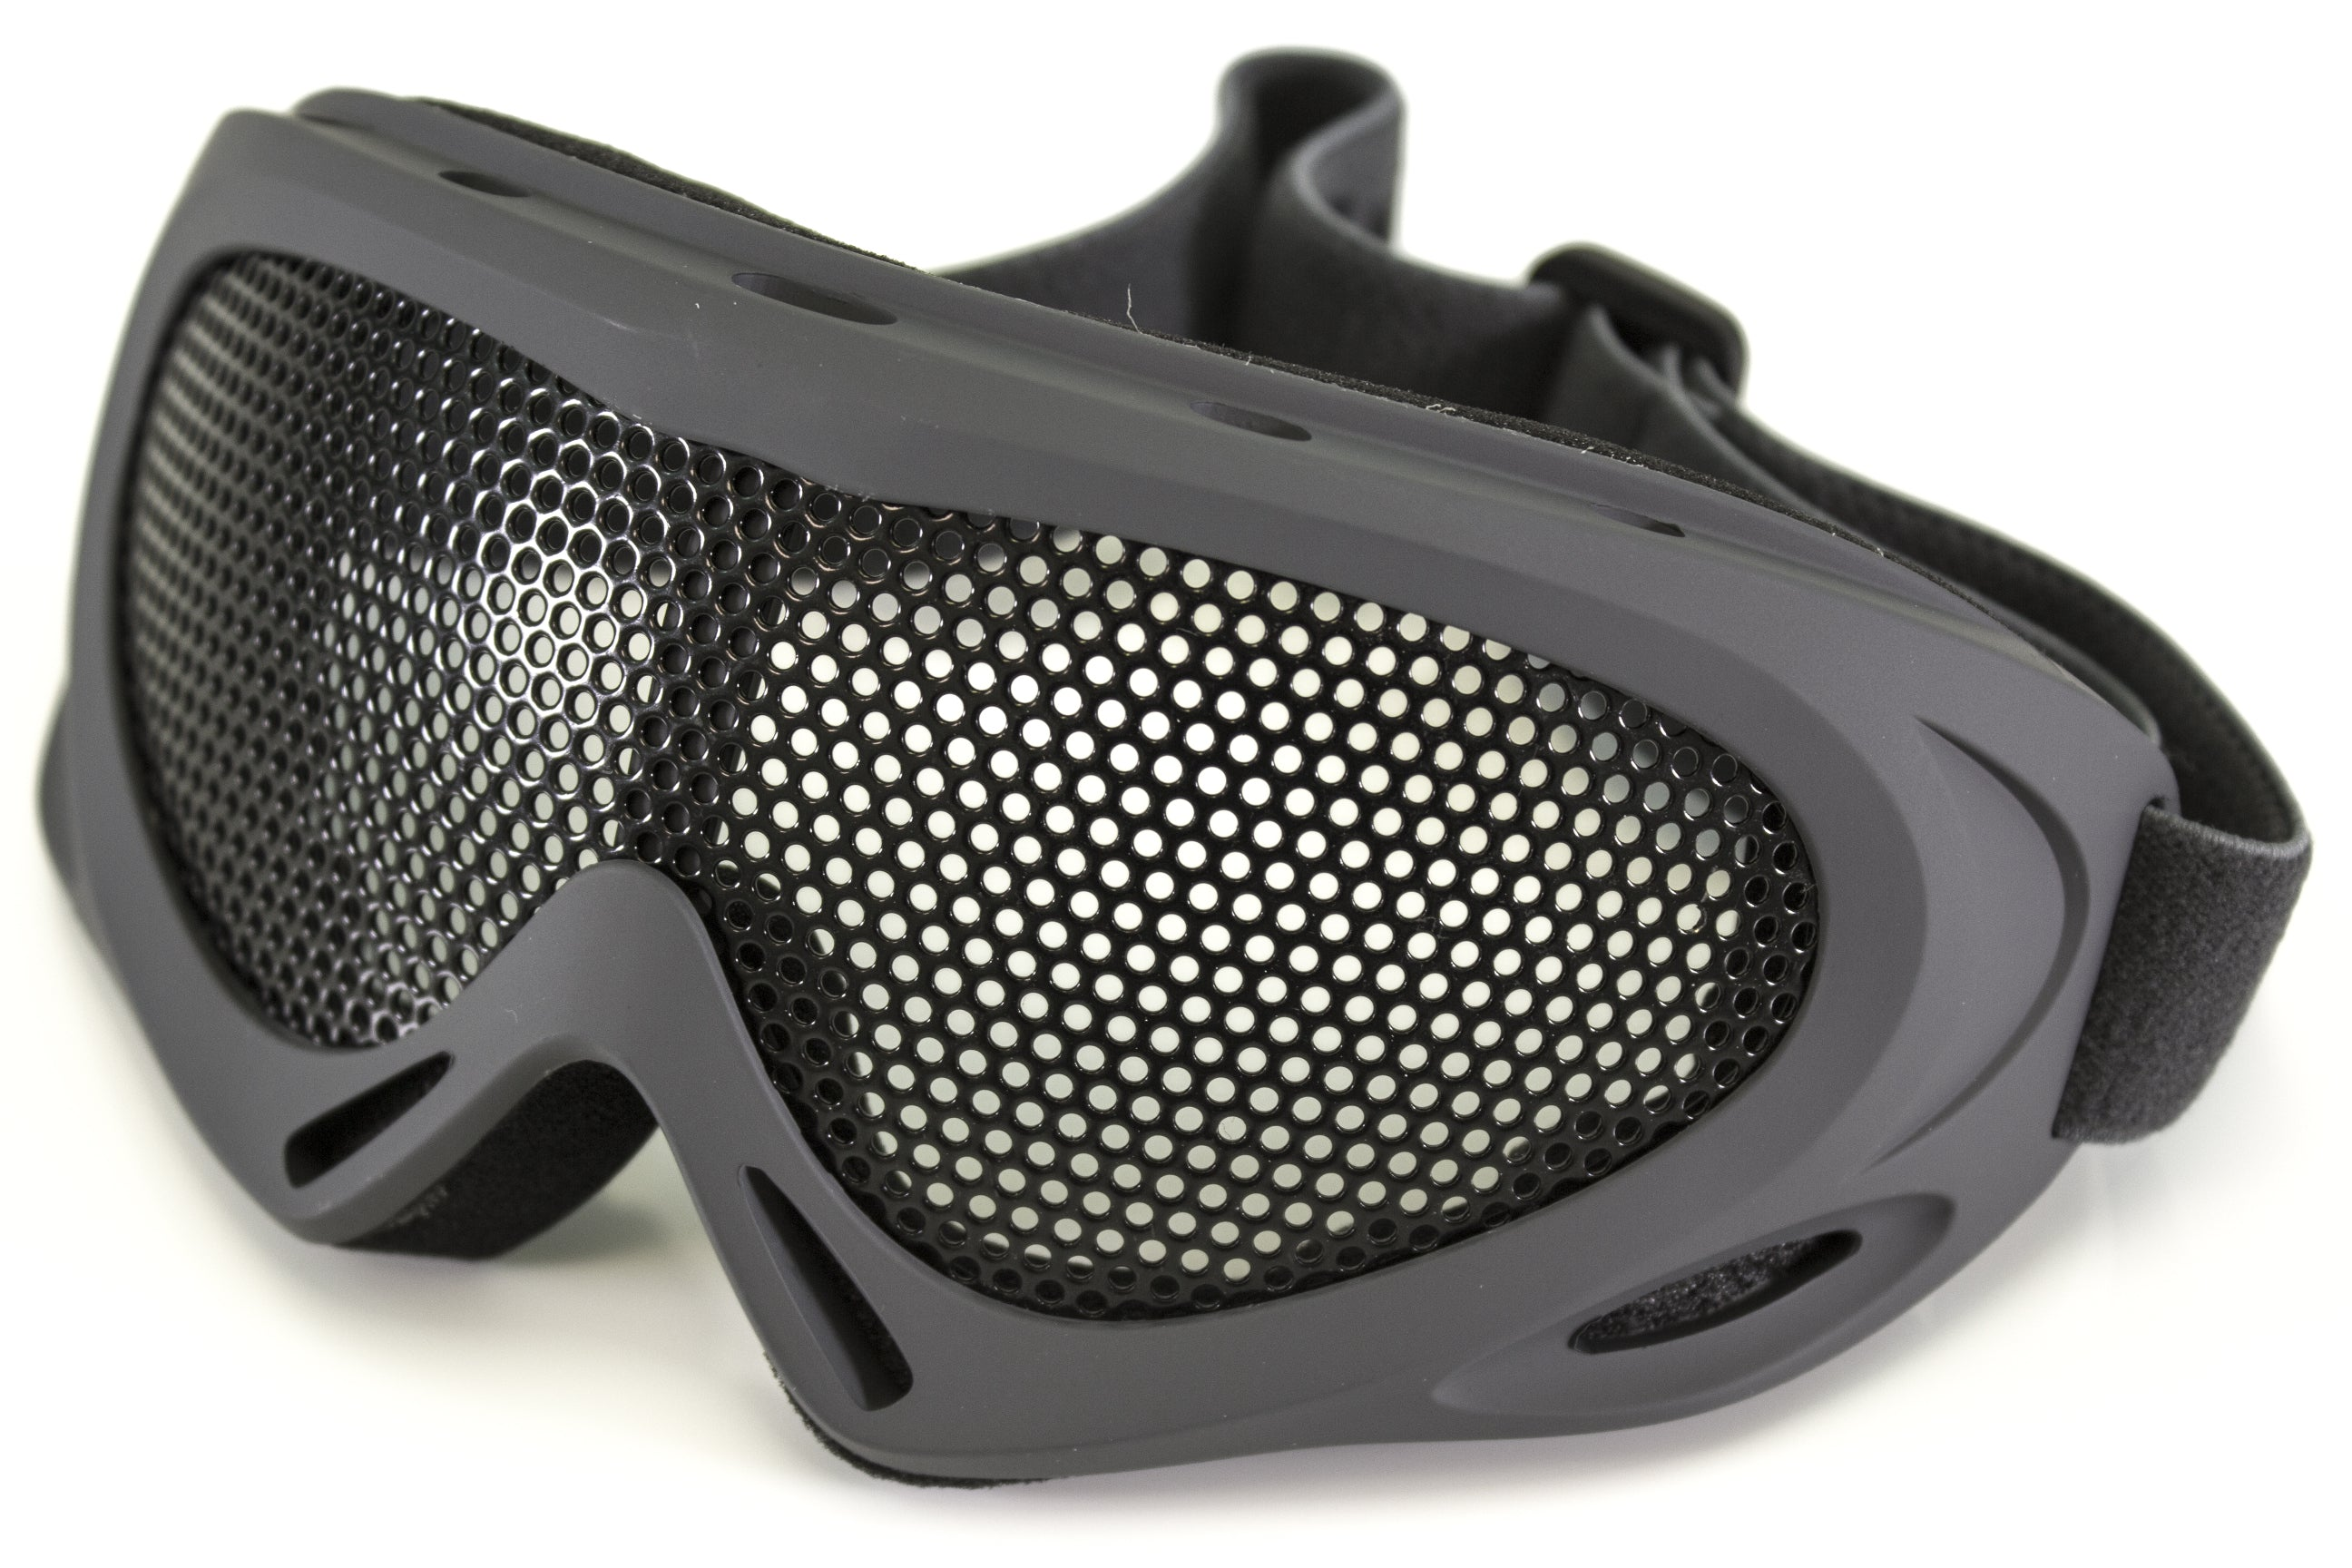 NP PRO MESH EYE PROTECTION - Multi Options